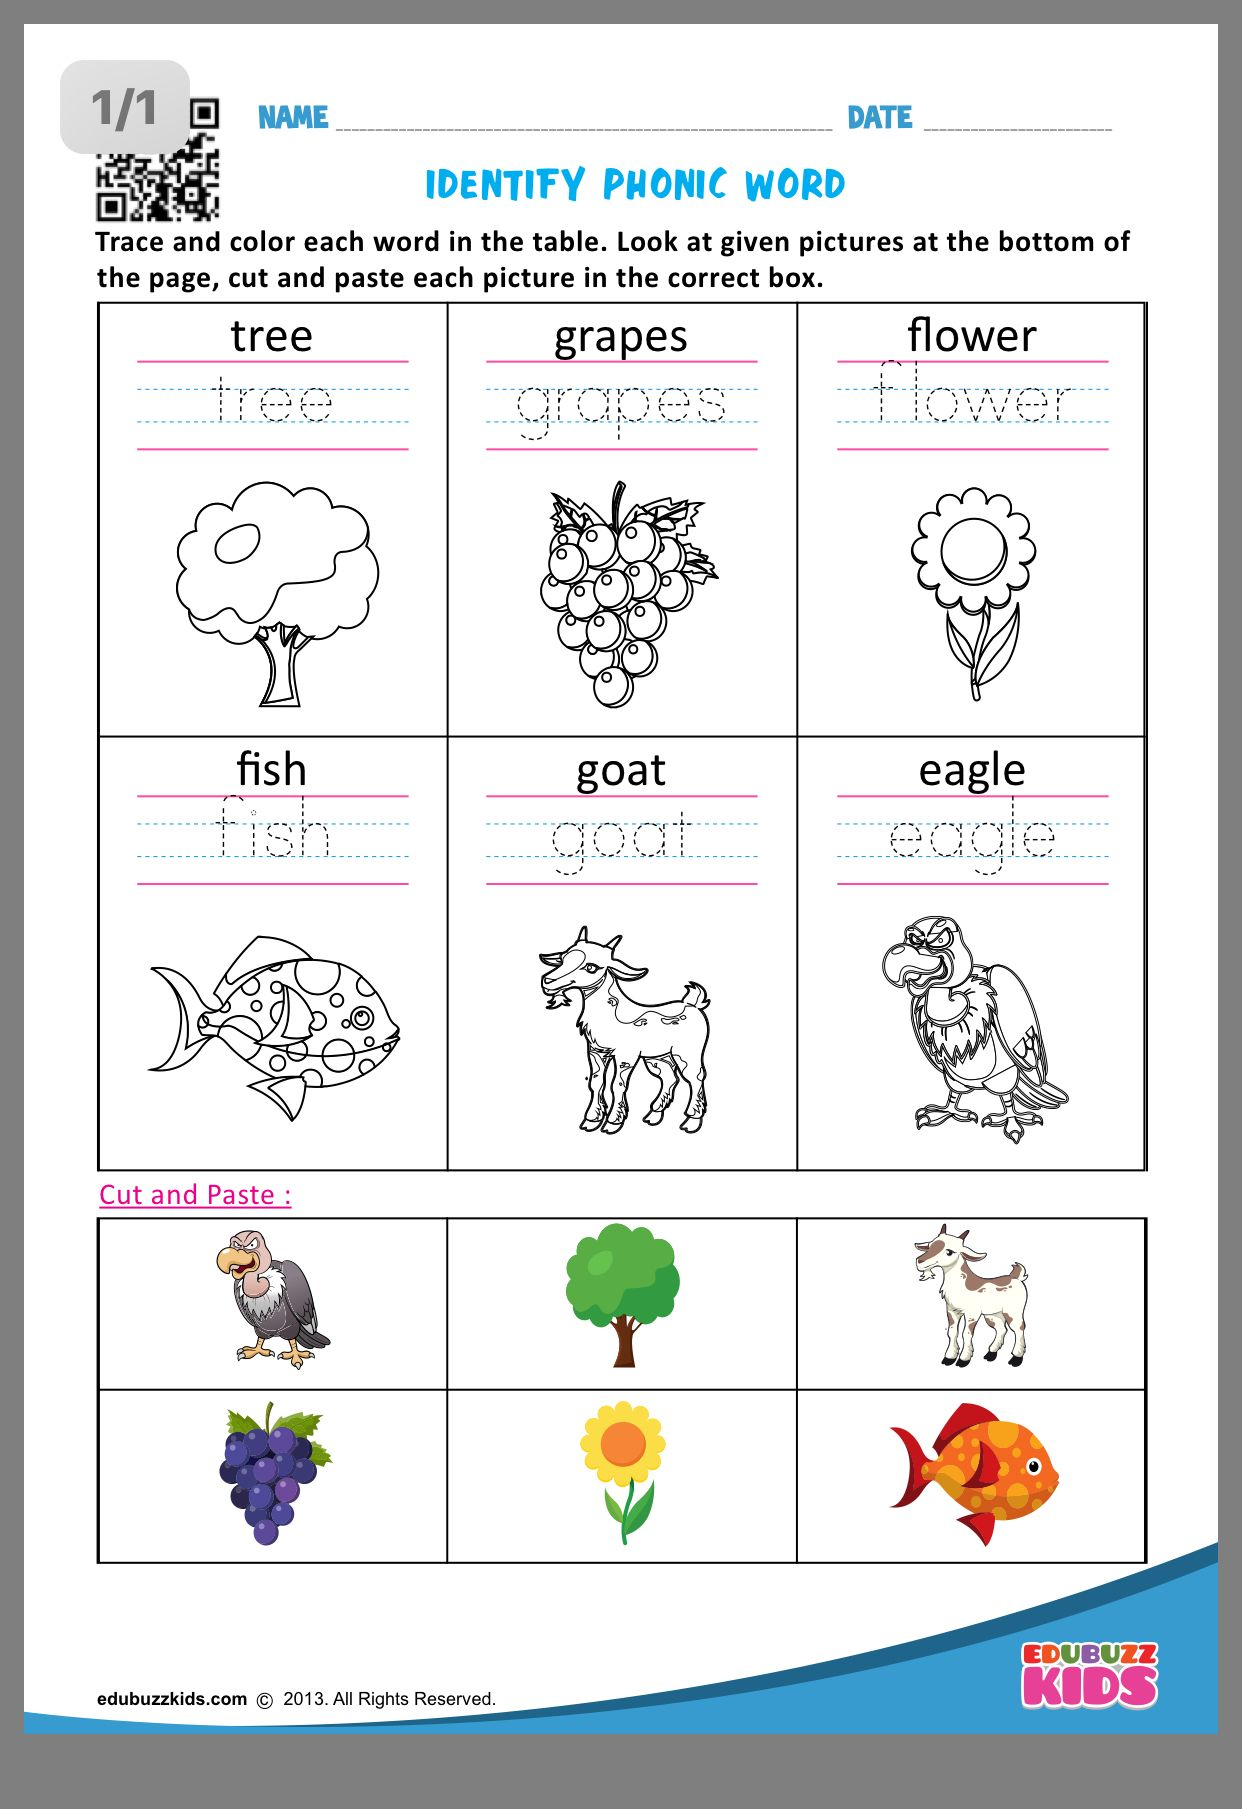 Pin By Zoe Ting On Calendar For Kids Phonics Words Phonics English Activities For Kids [ 1809 x 1242 Pixel ]